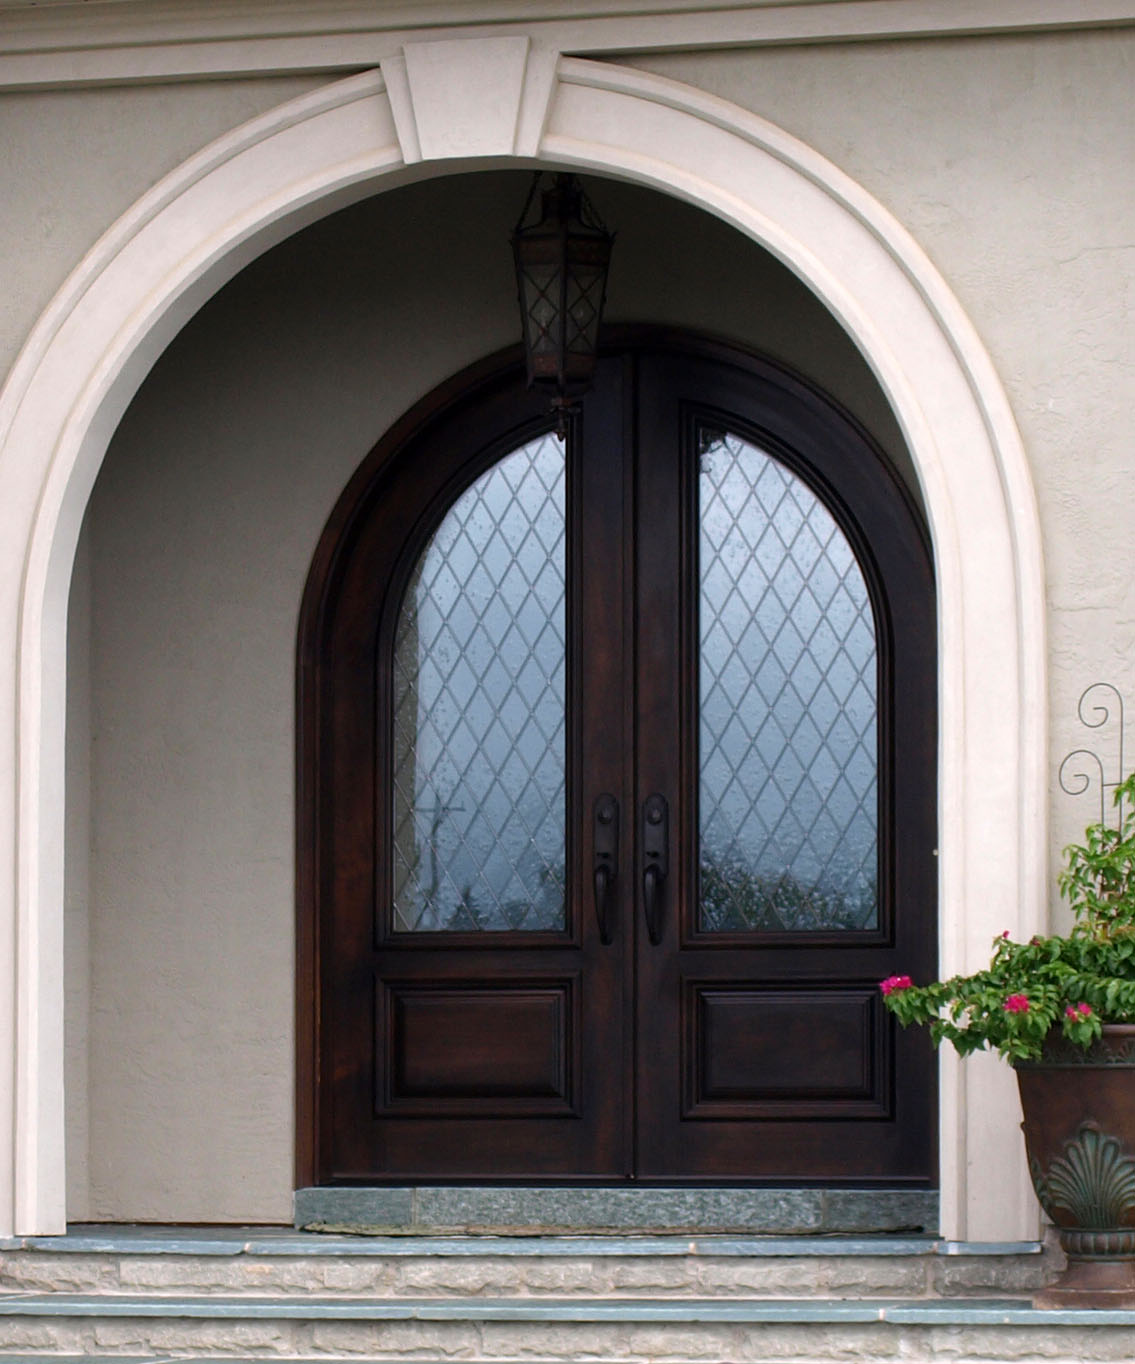 Hardwood Exterior Doors Premier Custom Millwork Surfaces Inc Wooden Doors Interior